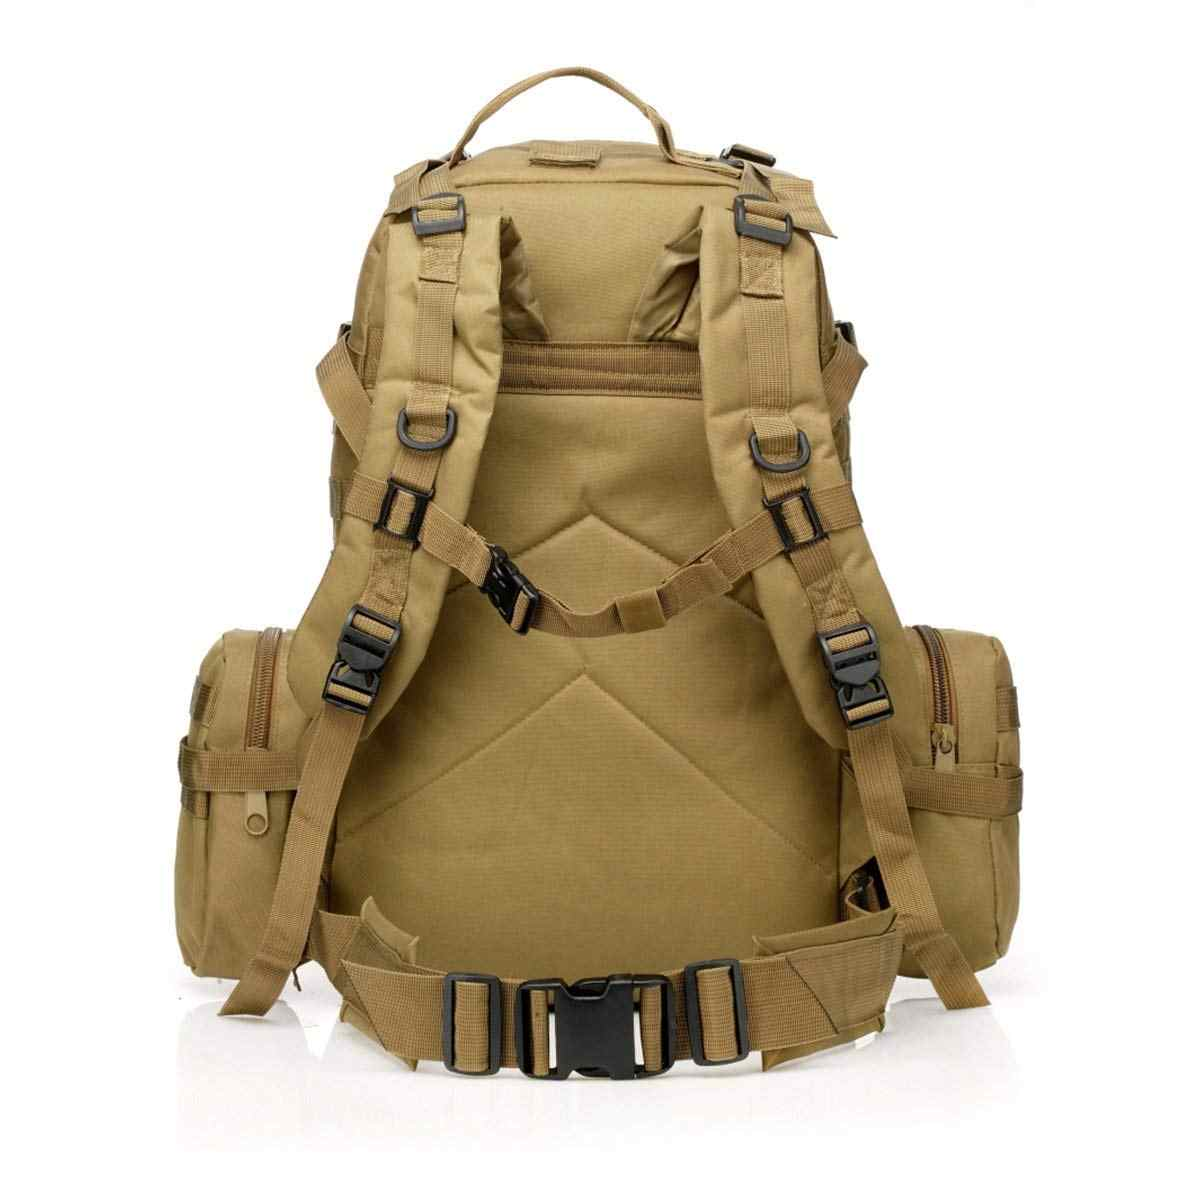 ... Outdoor 50L Military Rucksacks Tactical Molle Backpack Assault Pack  Combat Backpack Trekking Bag 4 In 1 ... 849178424c092